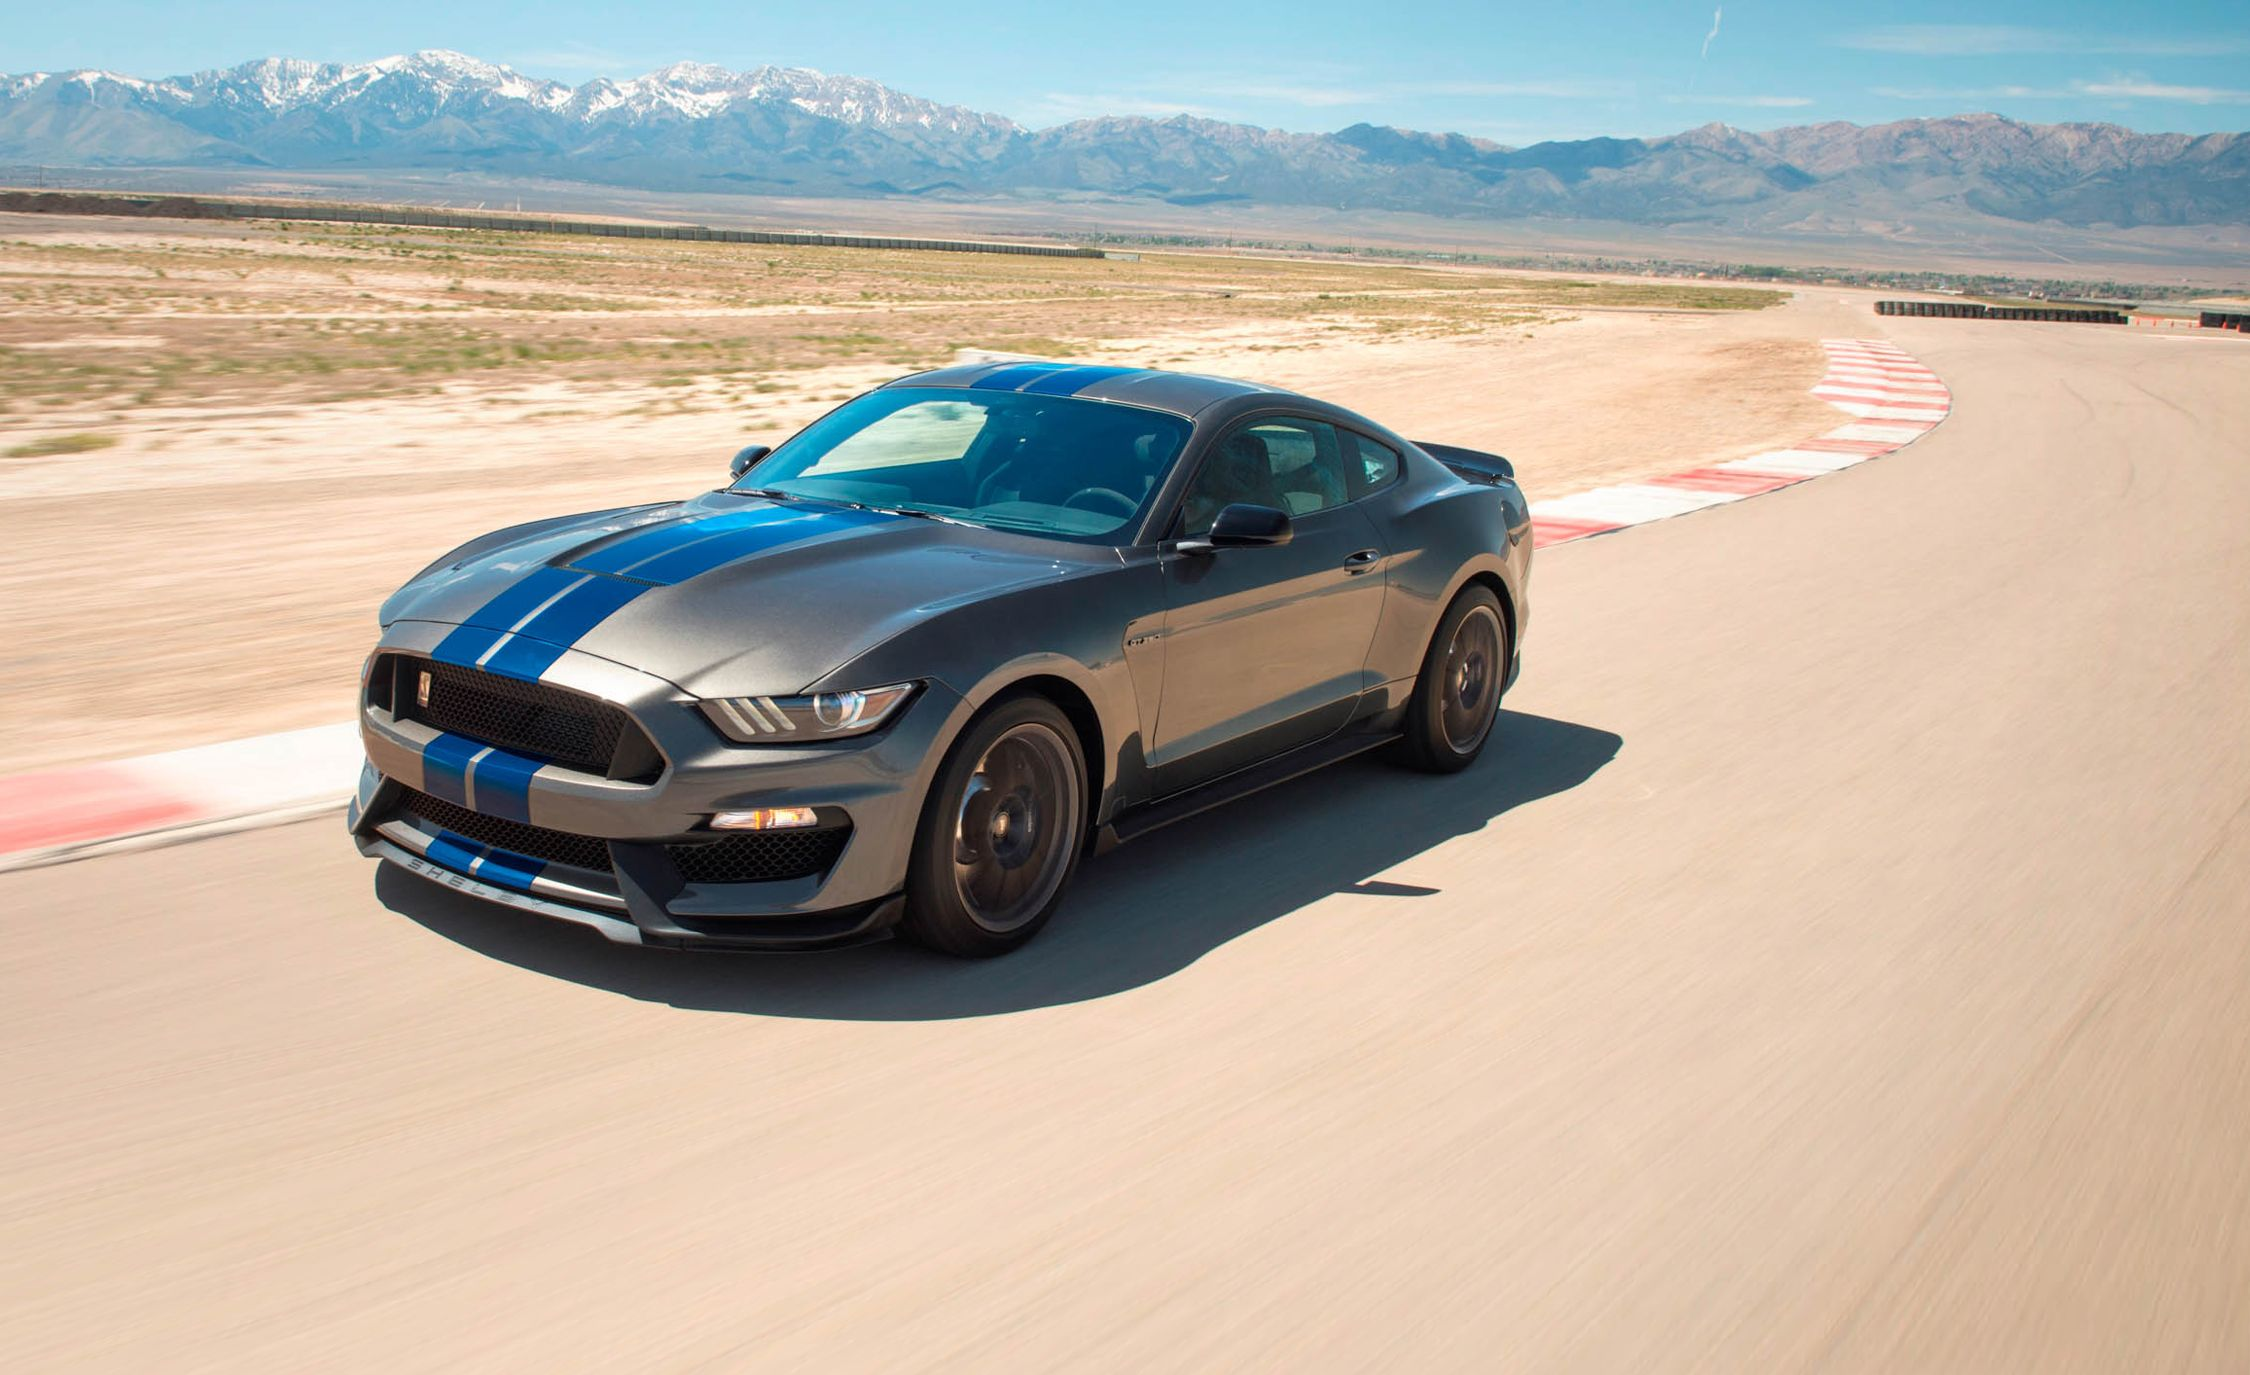 2018 Ford Mustang Shelby GT350 Pictures | Photo Gallery | Car and ...